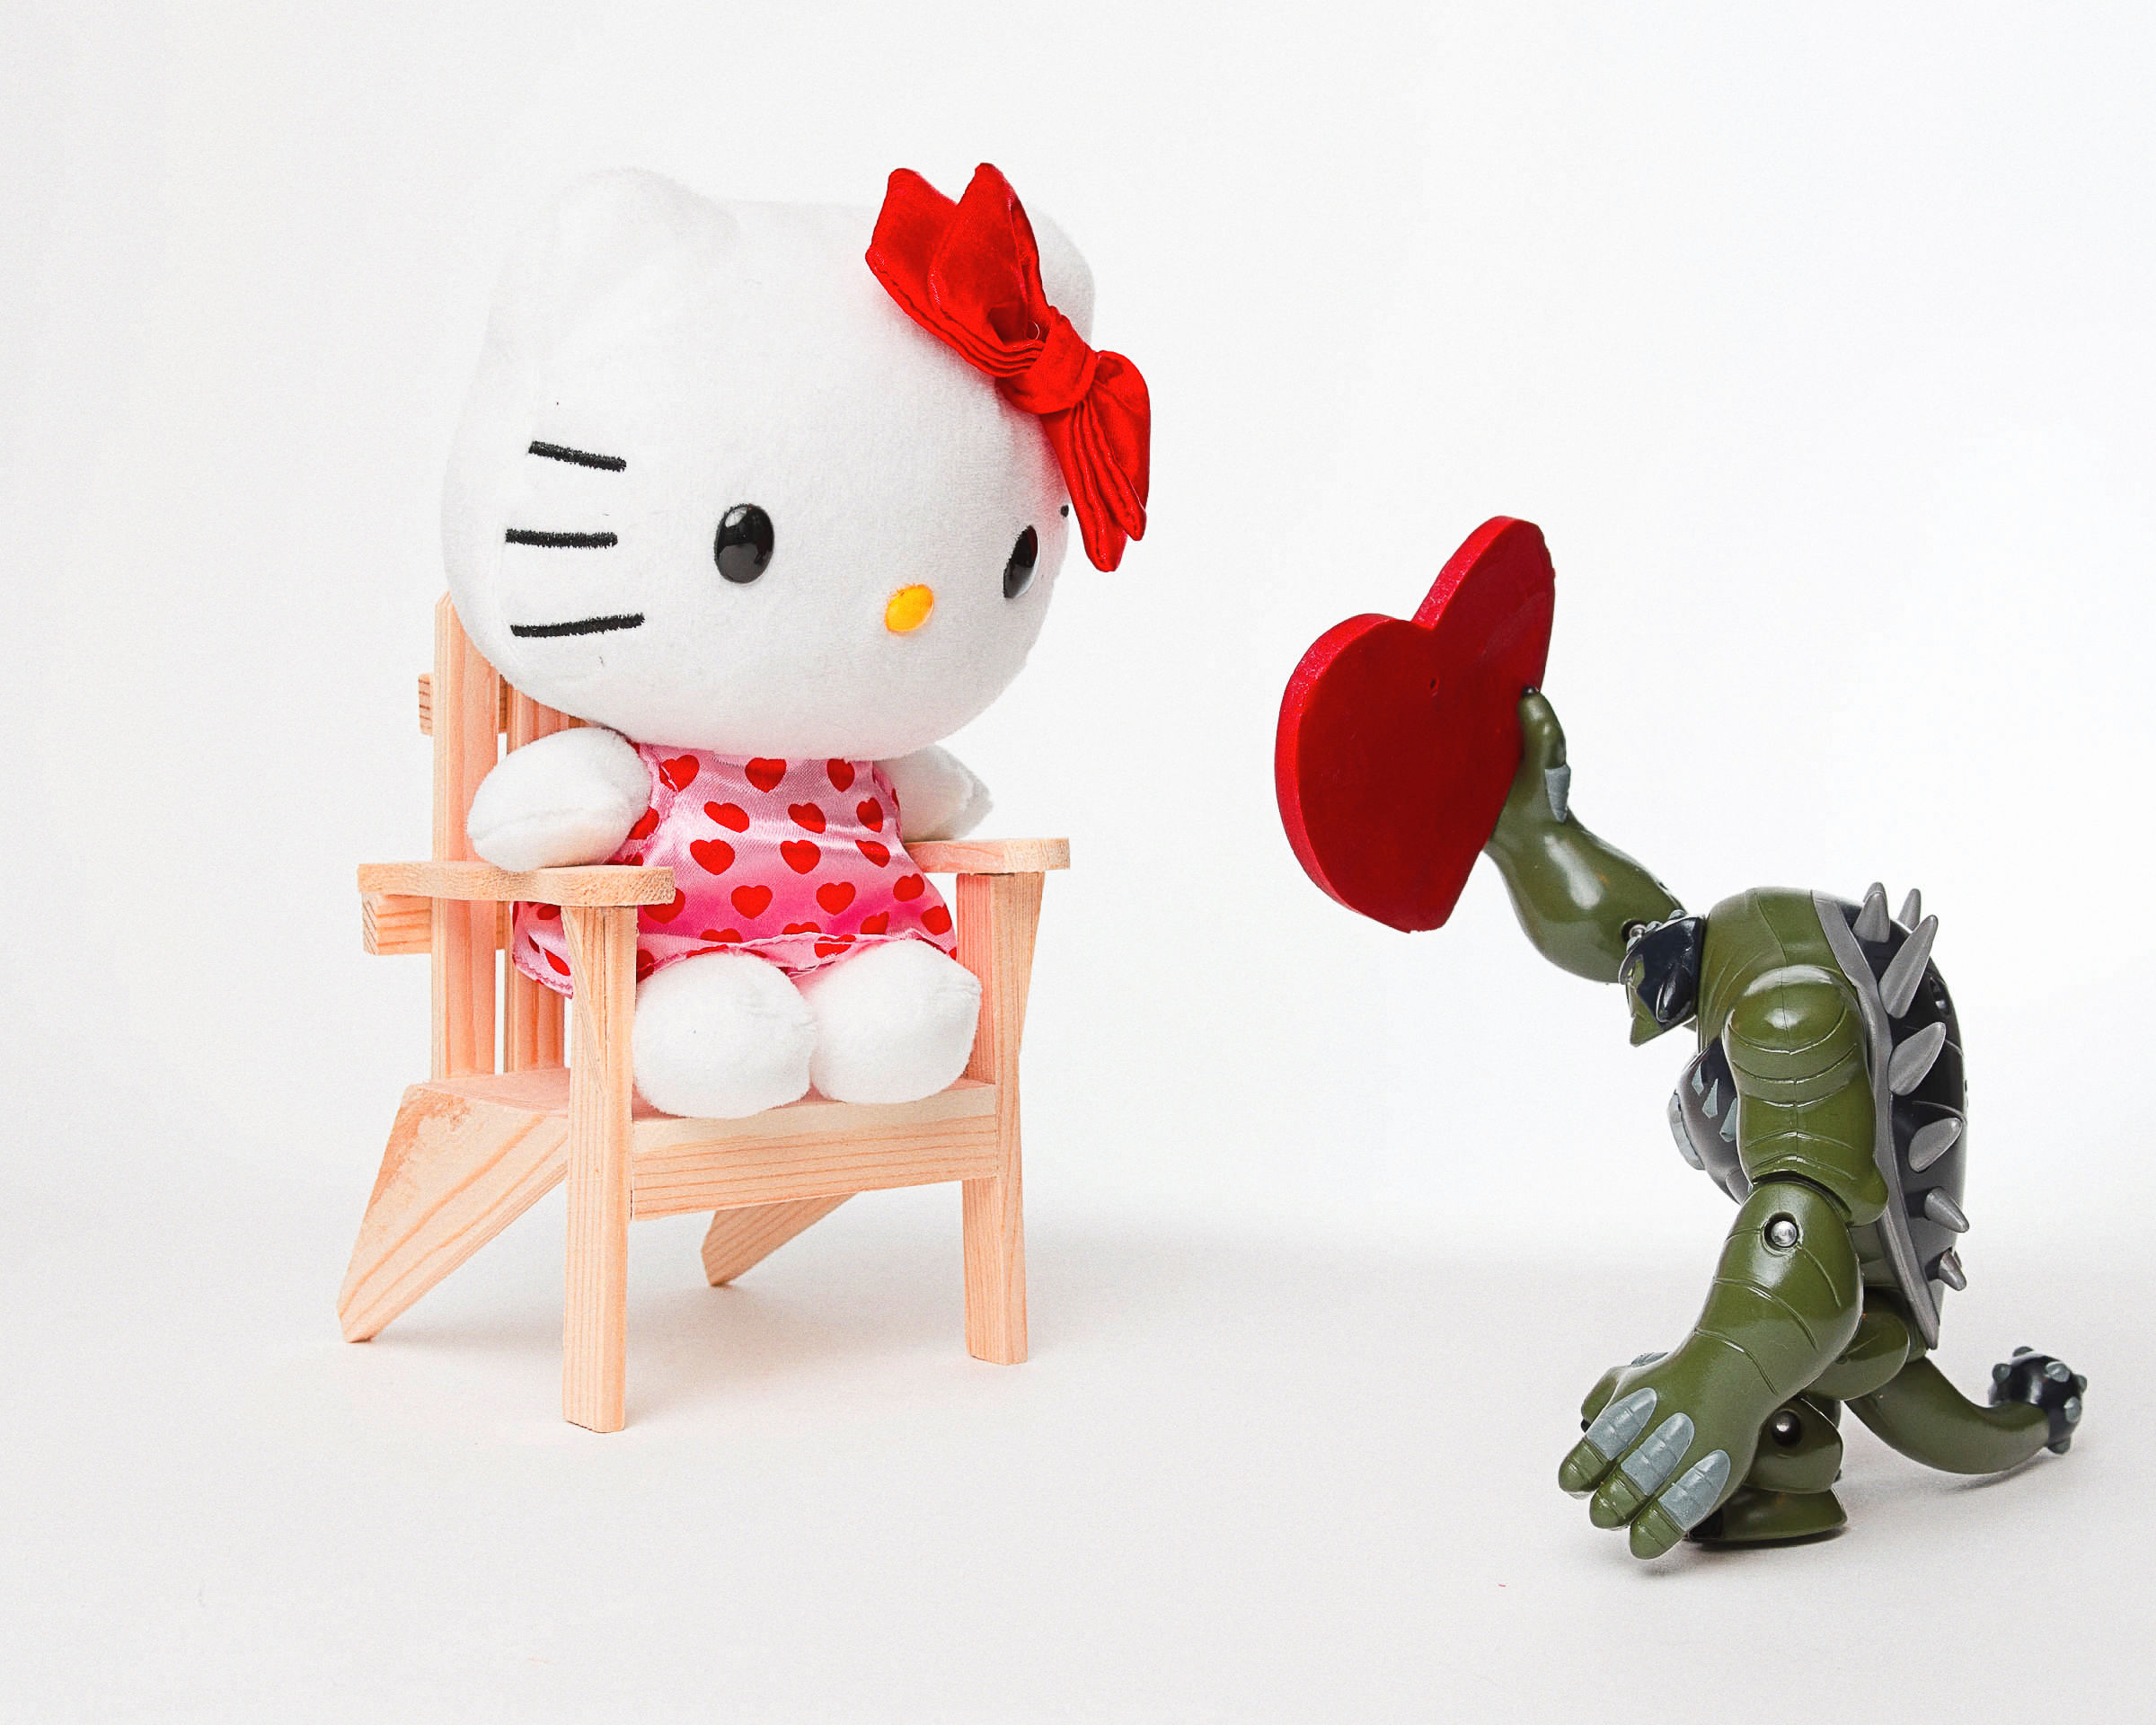 Miss Kitty finds an unexpected suitor vying for her affections on Valentines Day.